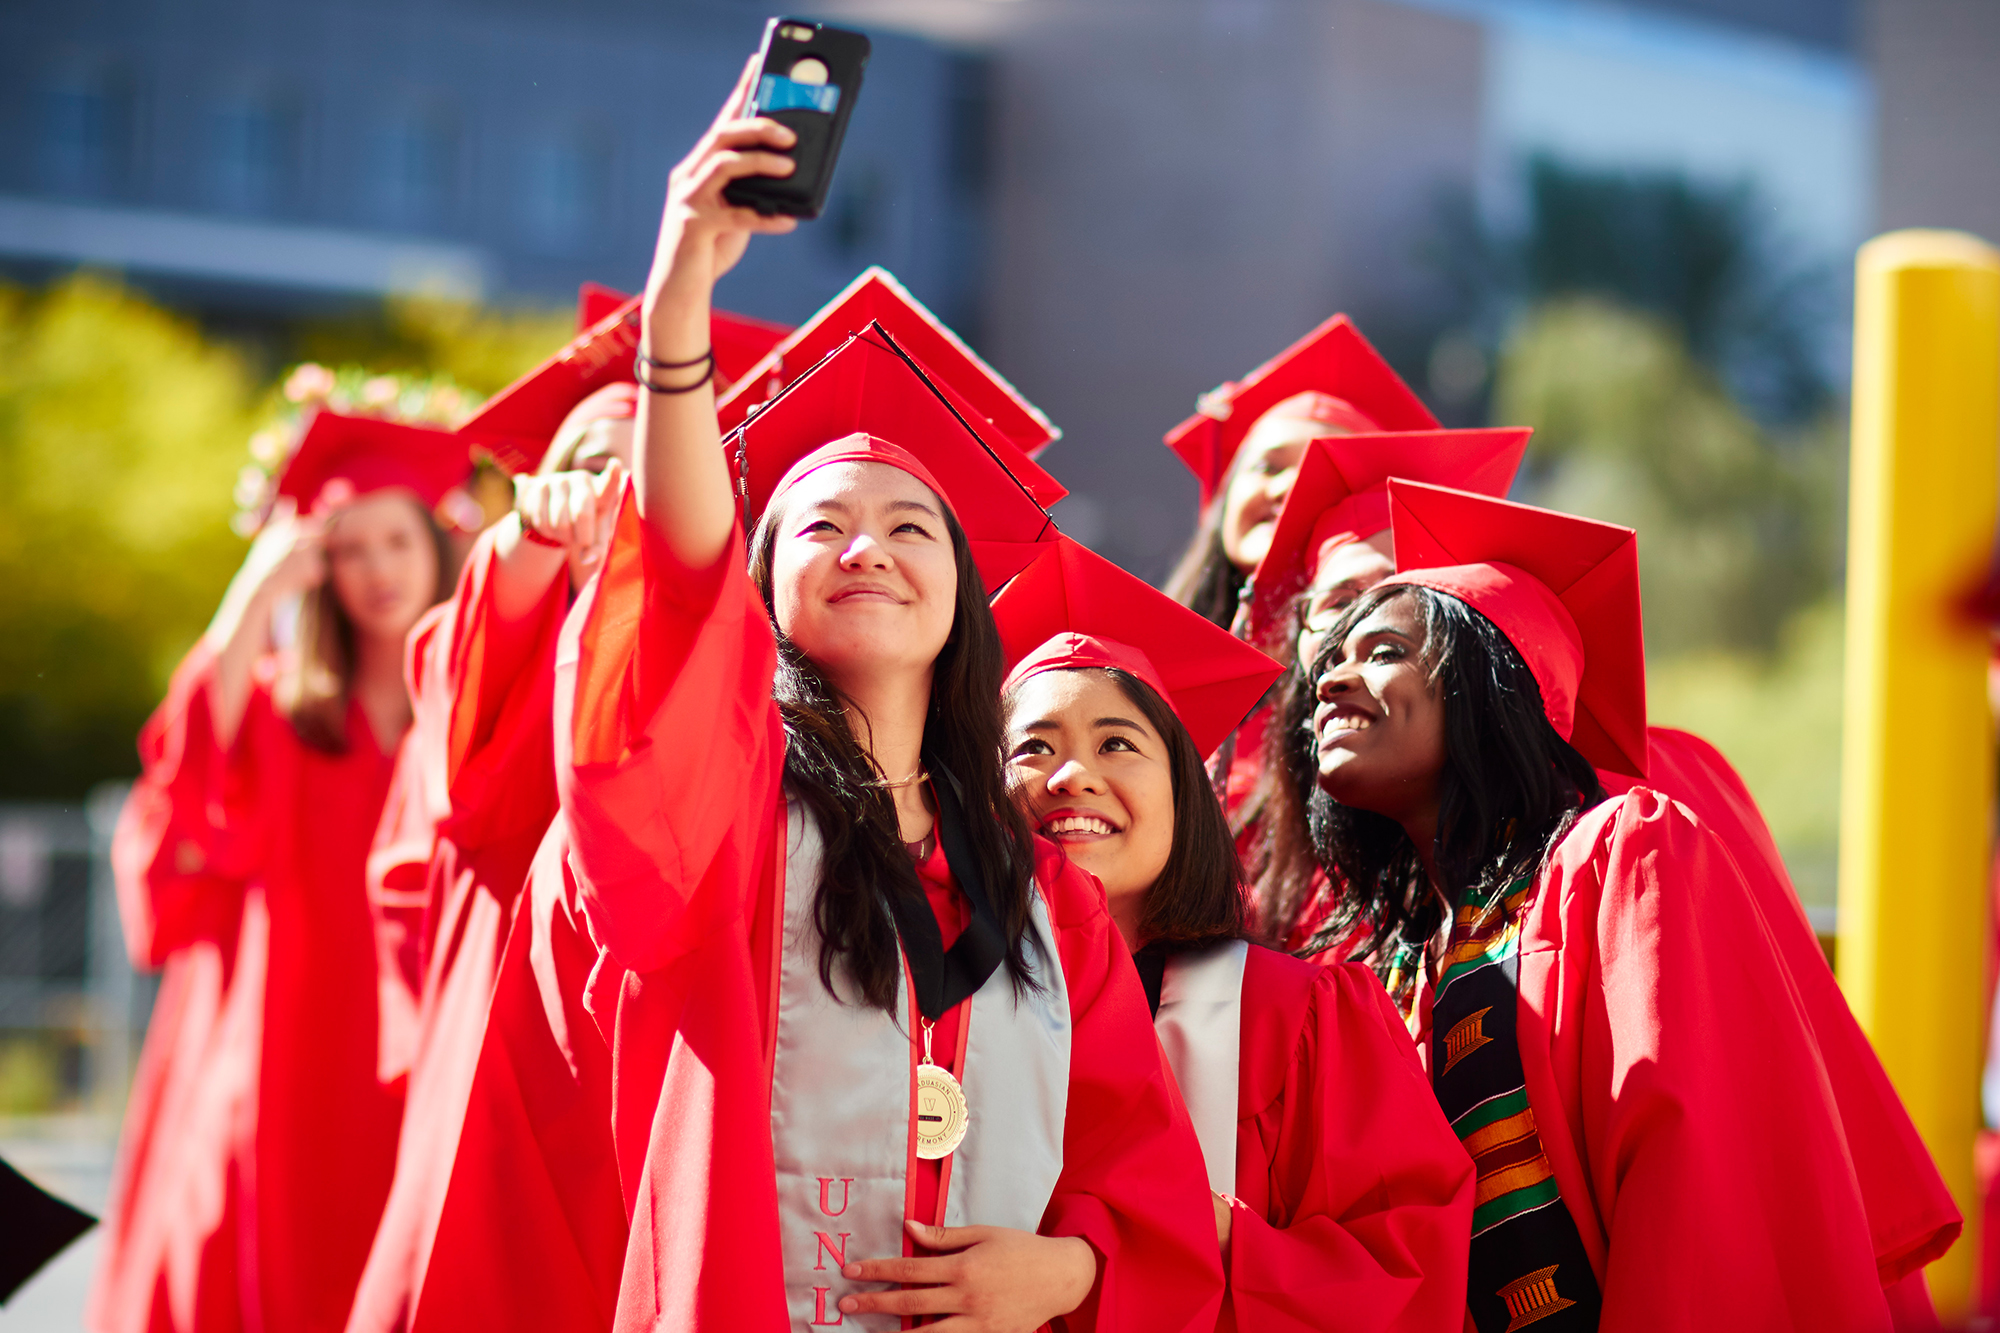 75a798d57f3 Group of people in graduation gowns taking selfie